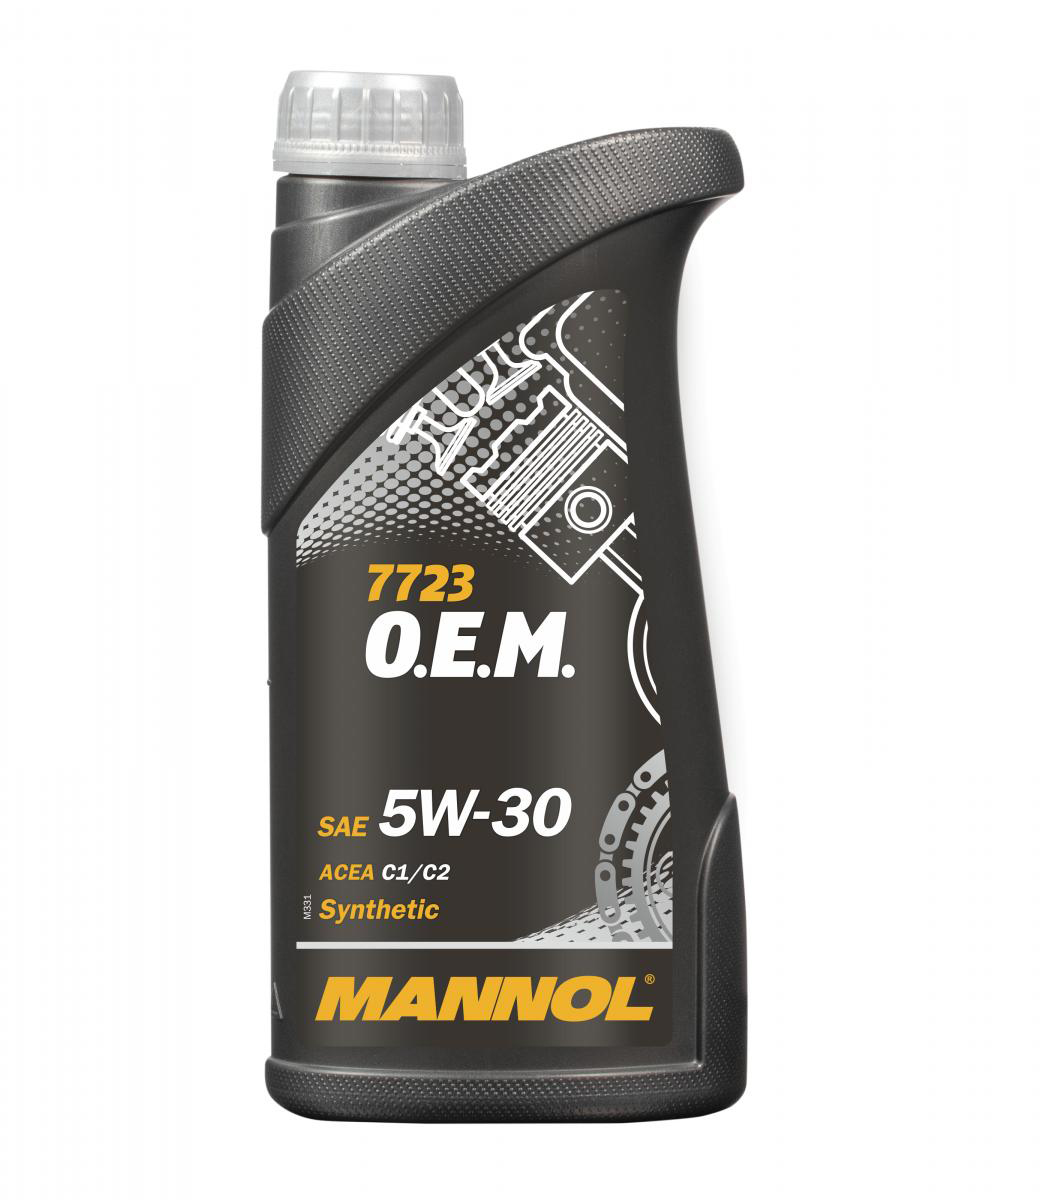 O.E.M. for Land Rover Jaguar 5W-30